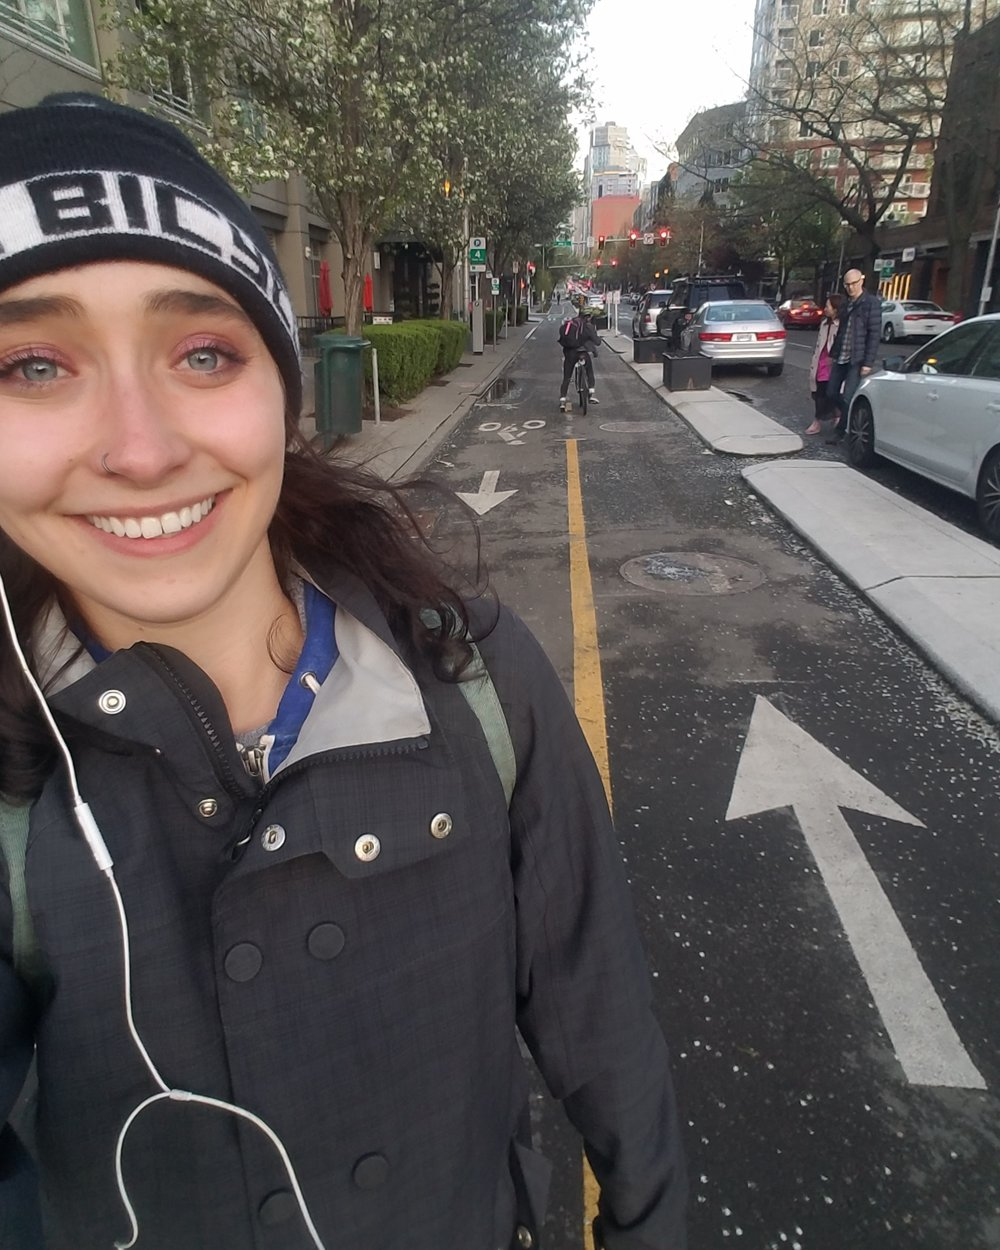 A Bike lane so good you gotta get a pic with it!